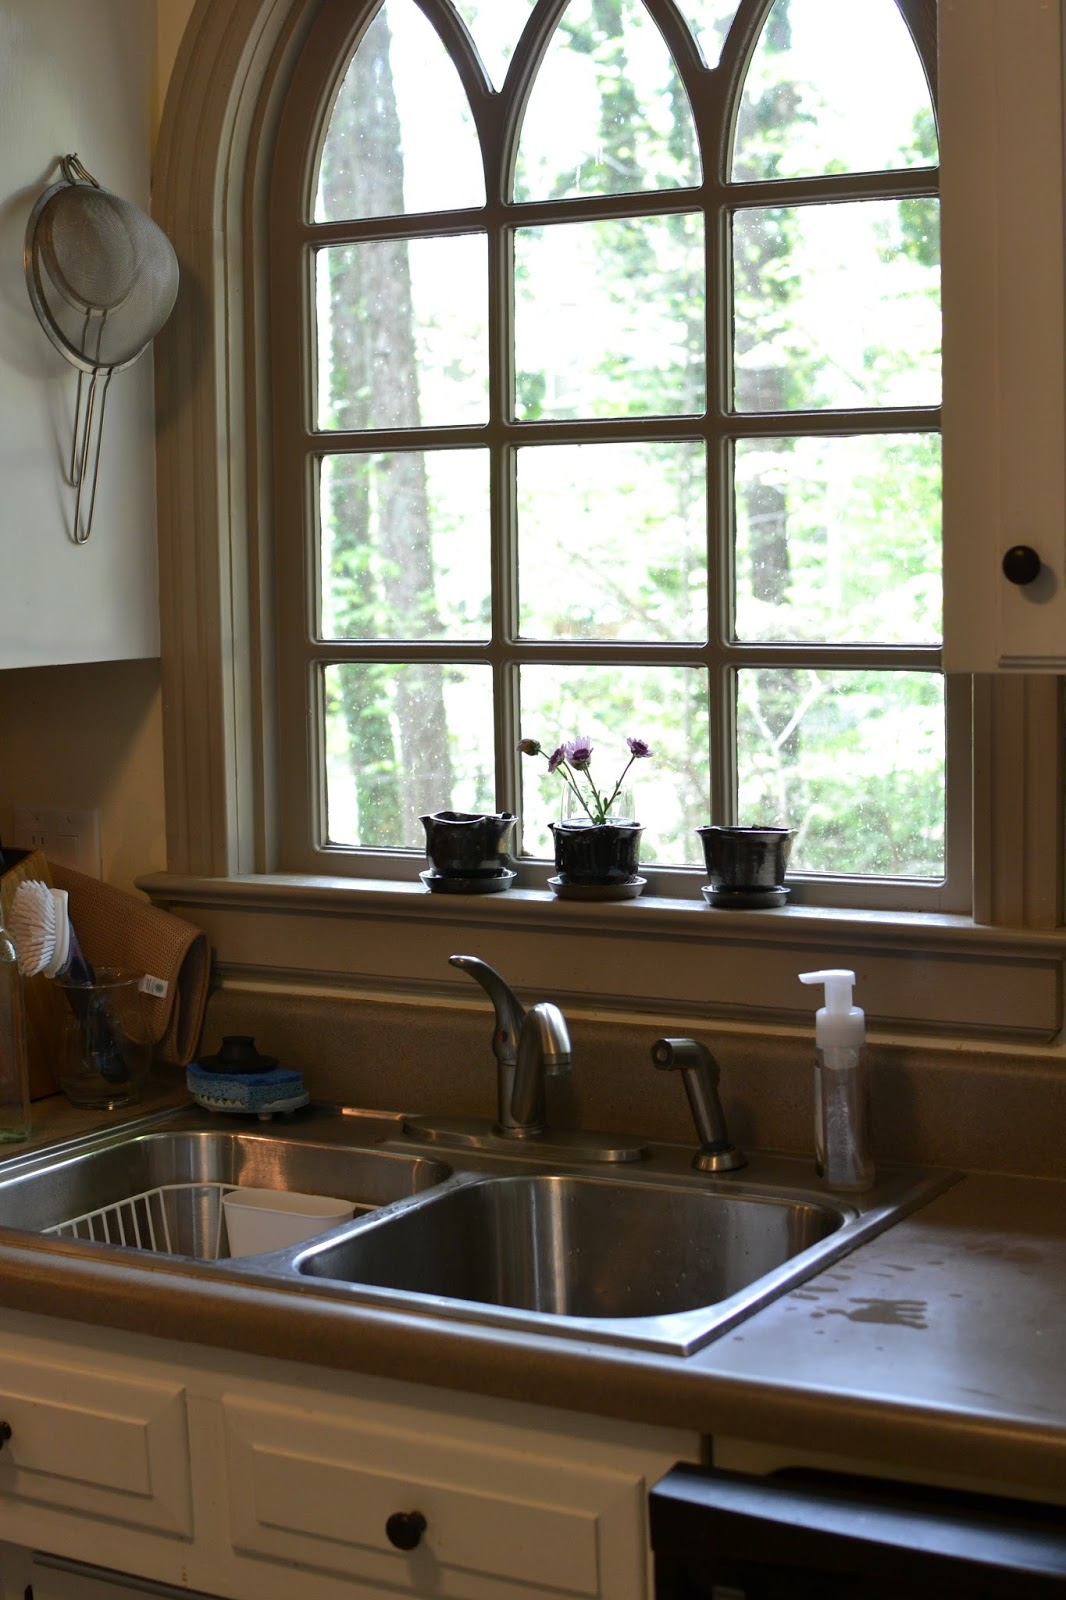 imagine my joy when we toured this house and saw such a picturesque kitchen sink window i fell in love from that point onward and knew this house was the : sink windows window love